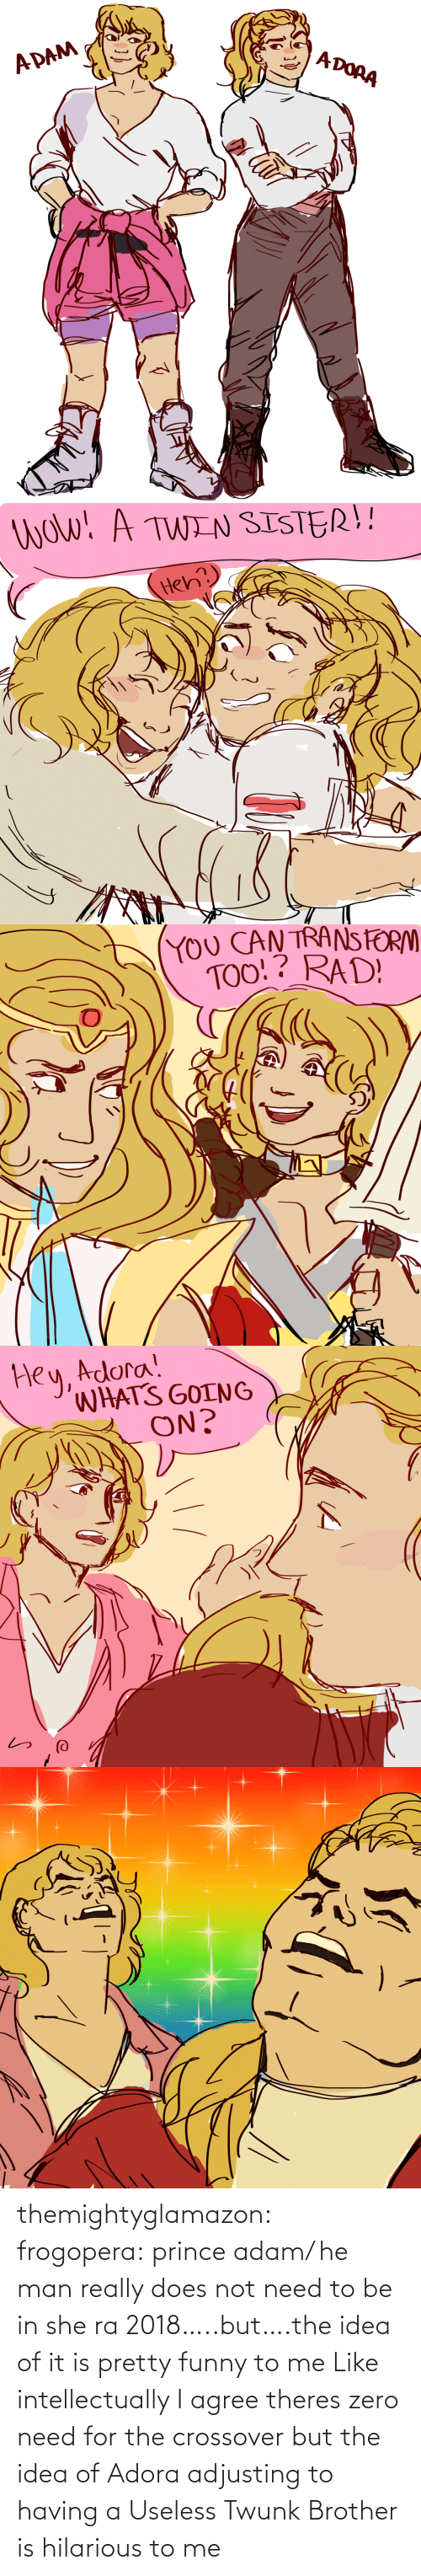 Is Hilarious: themightyglamazon: frogopera: prince adam/ he man really does not need to be in she ra 2018…..but….the idea of it is pretty funny to me   Like intellectually I agree theres zero need for the crossover but the idea of Adora adjusting to having a Useless Twunk Brother is hilarious to me